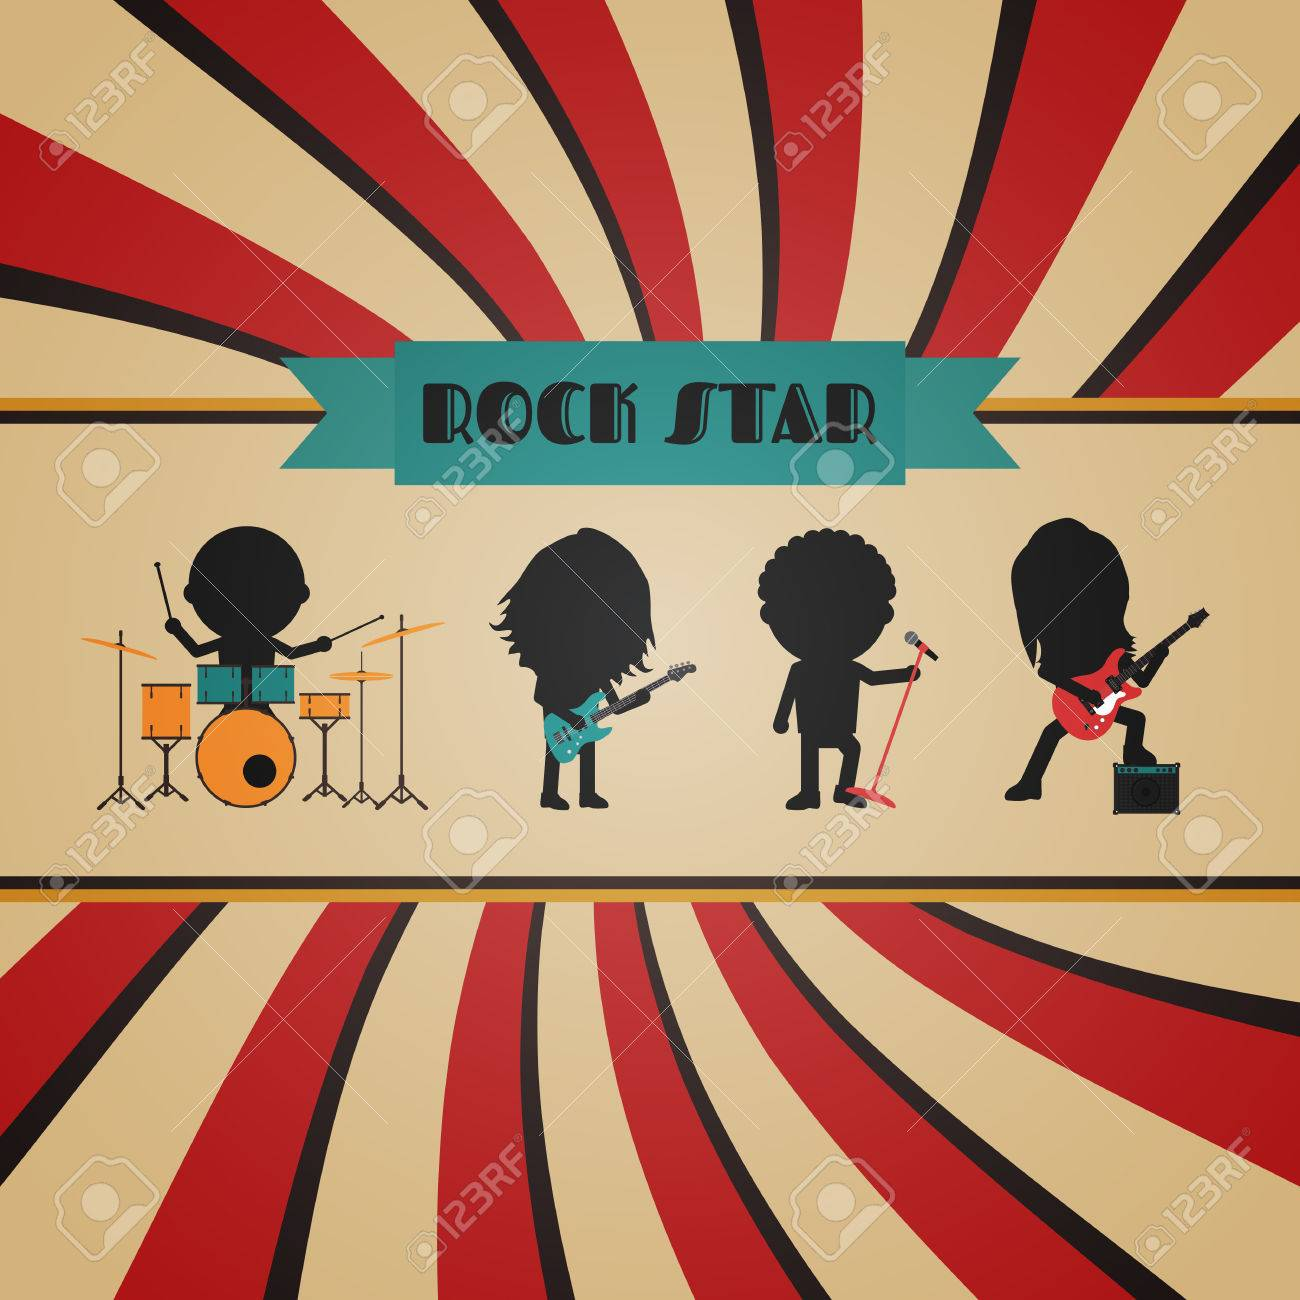 retro rock band poster, vintage style - 51556412